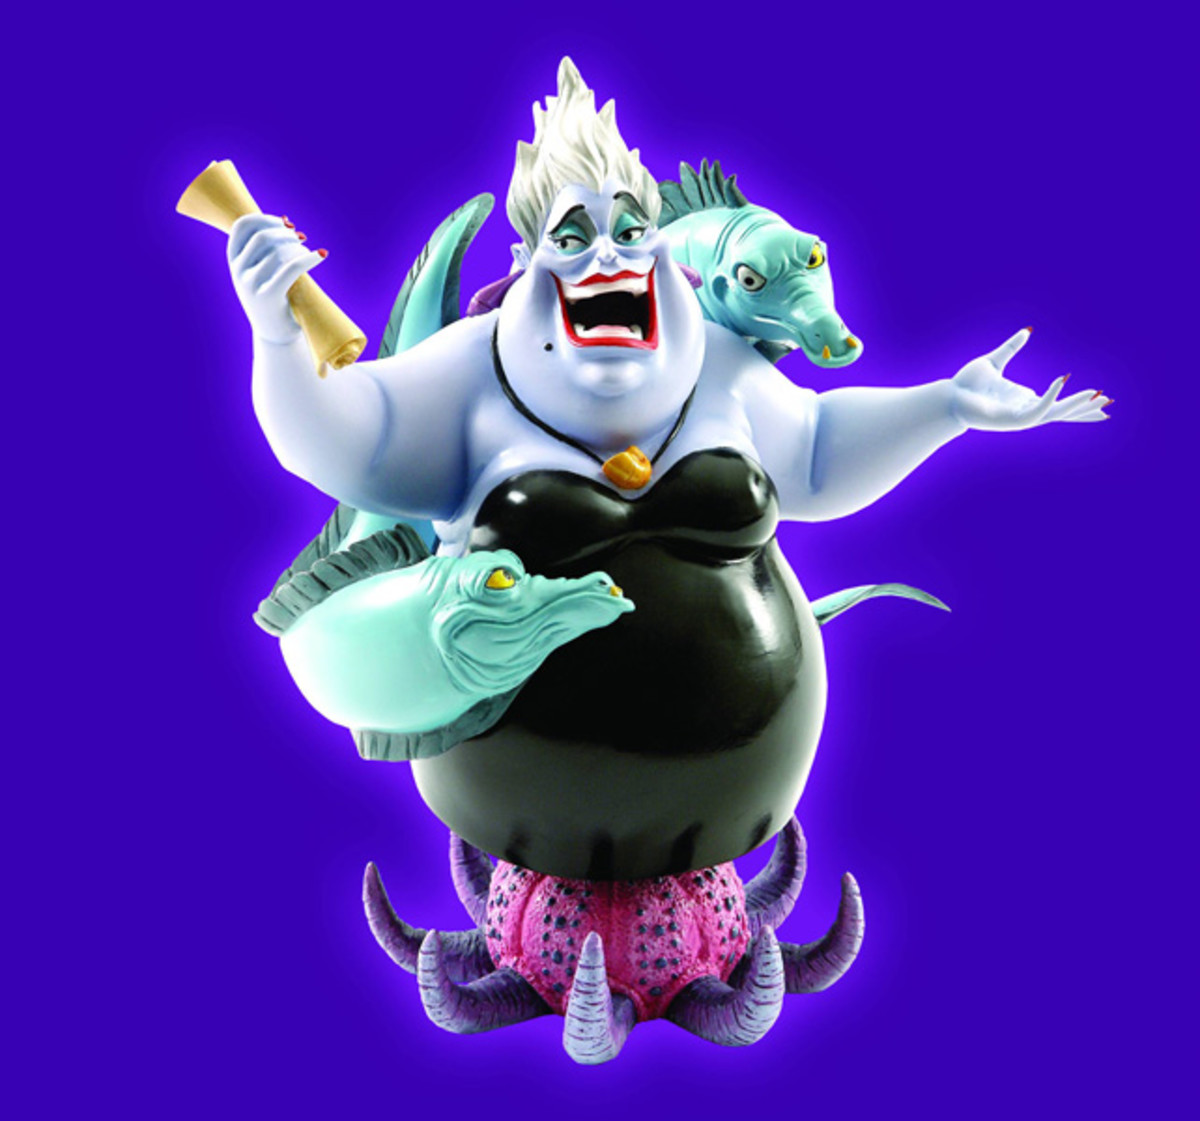 Ursula is another classic Disney villain.